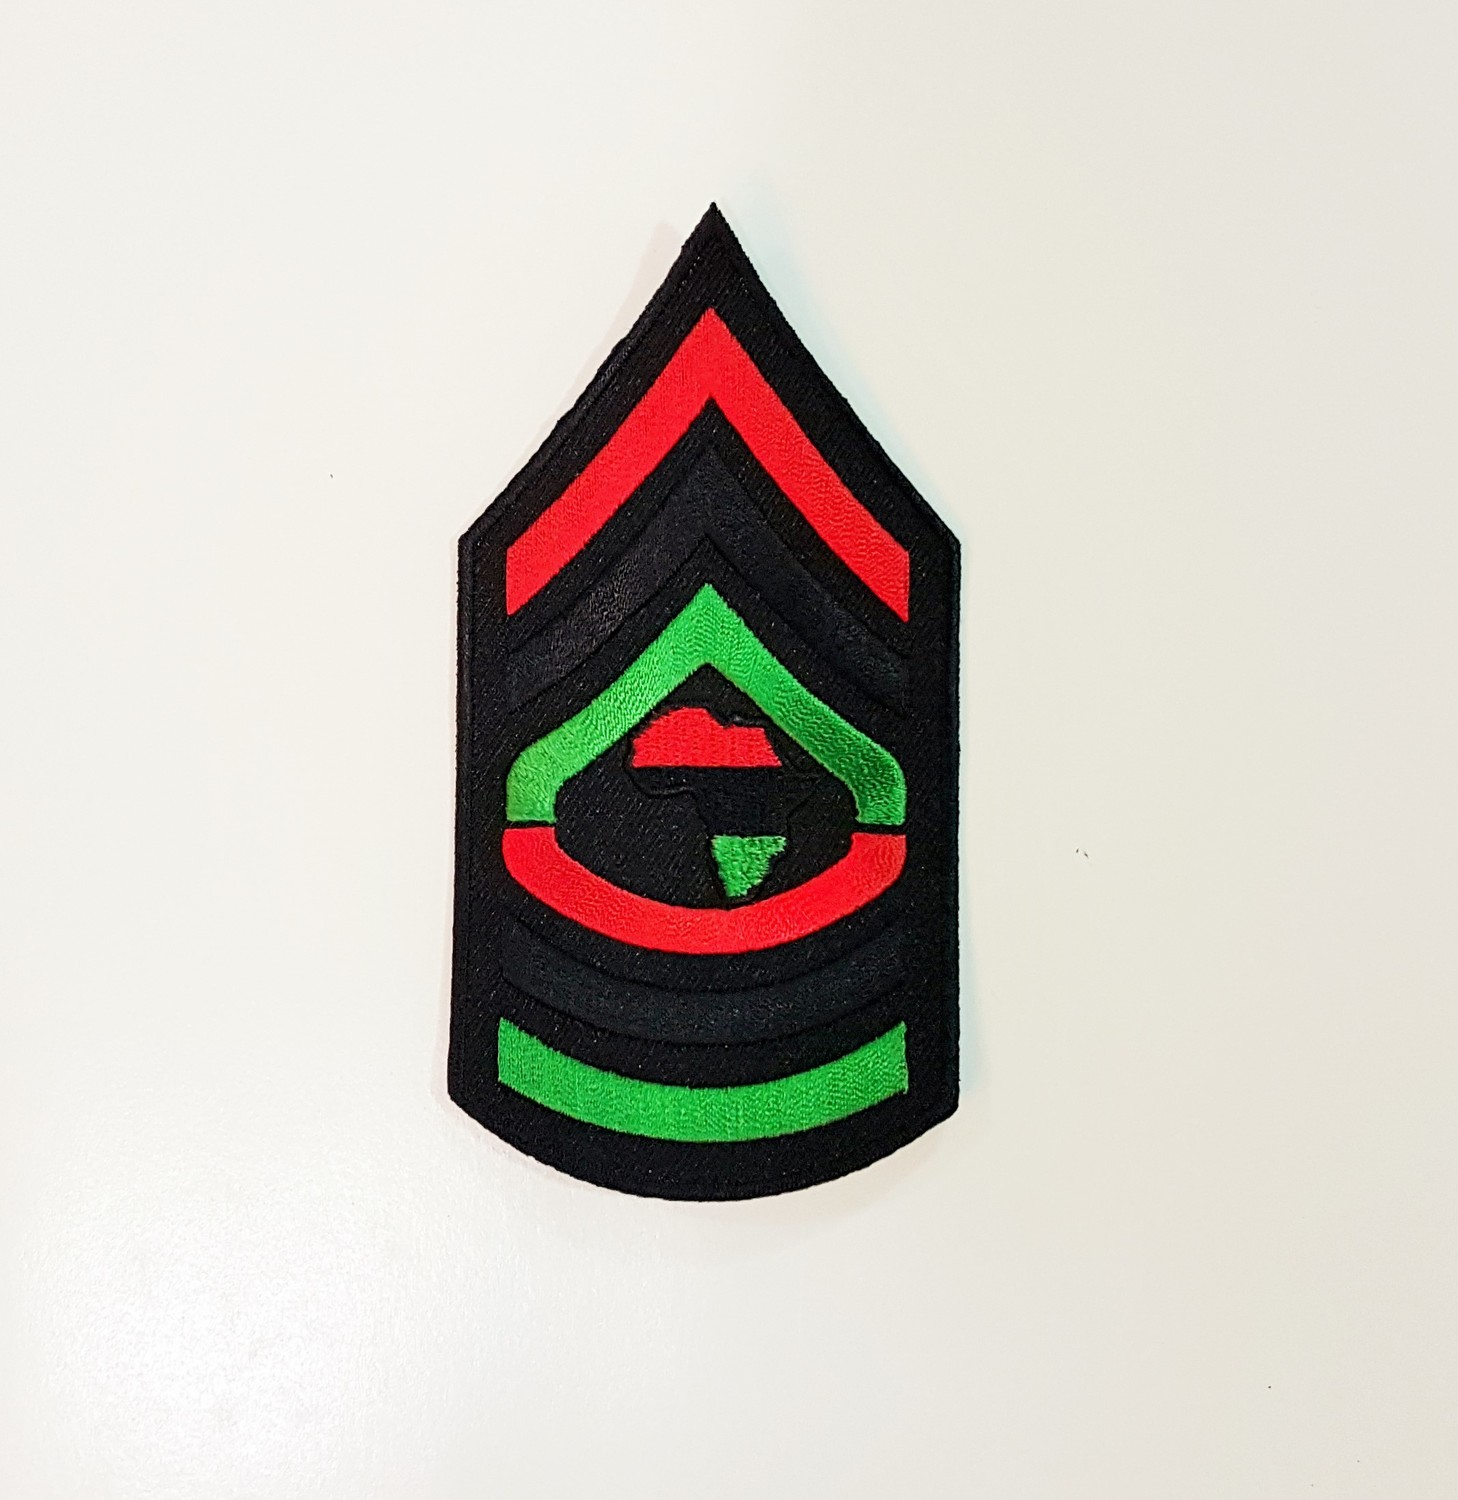 Small Red, Black, and Green Afrika Patch